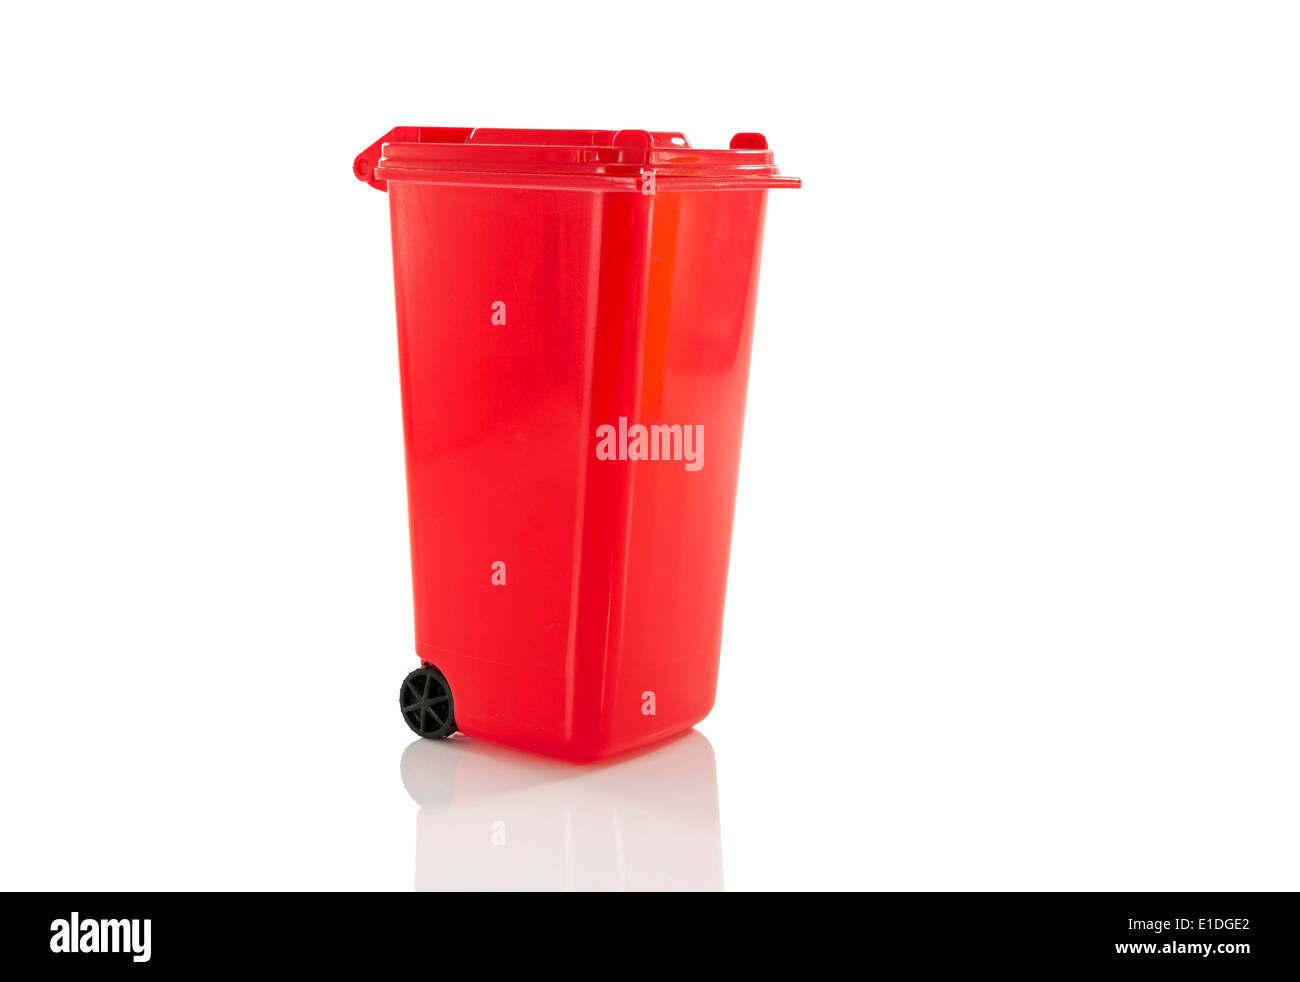 red garbage bin isolated on white - Stock Image